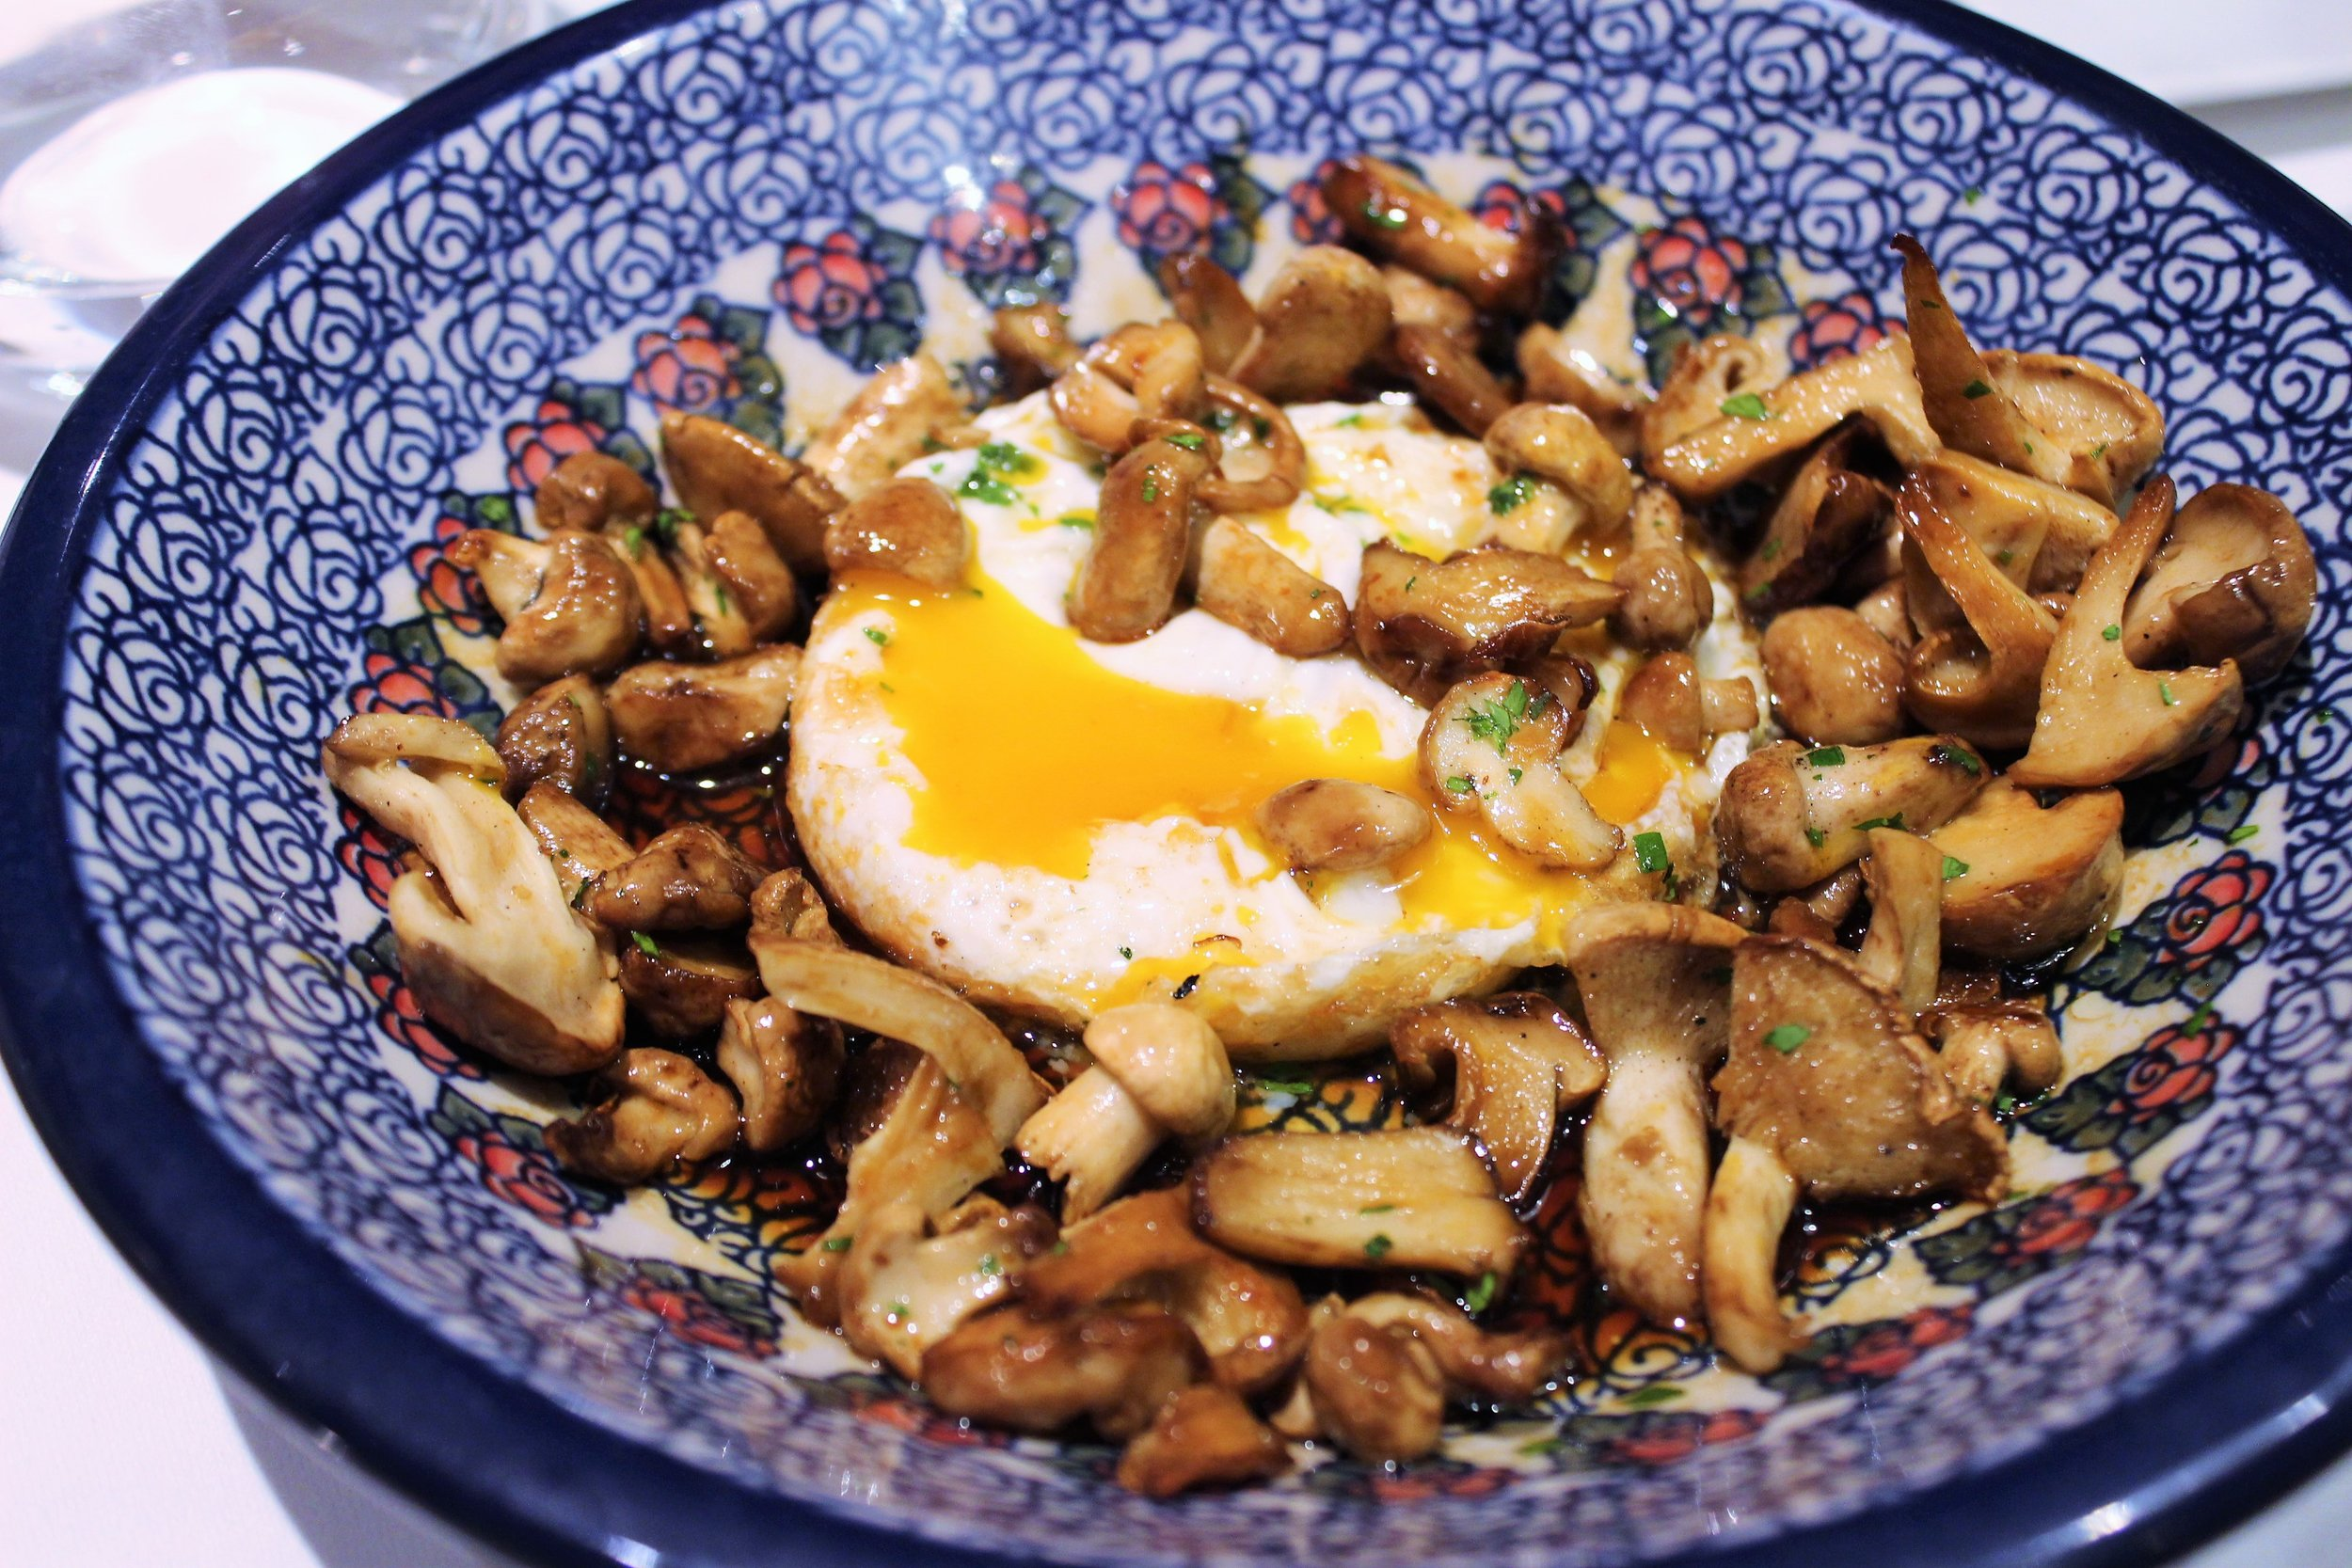 Wild Mushrooms with Farm Egg at Igueldo in Barcelona